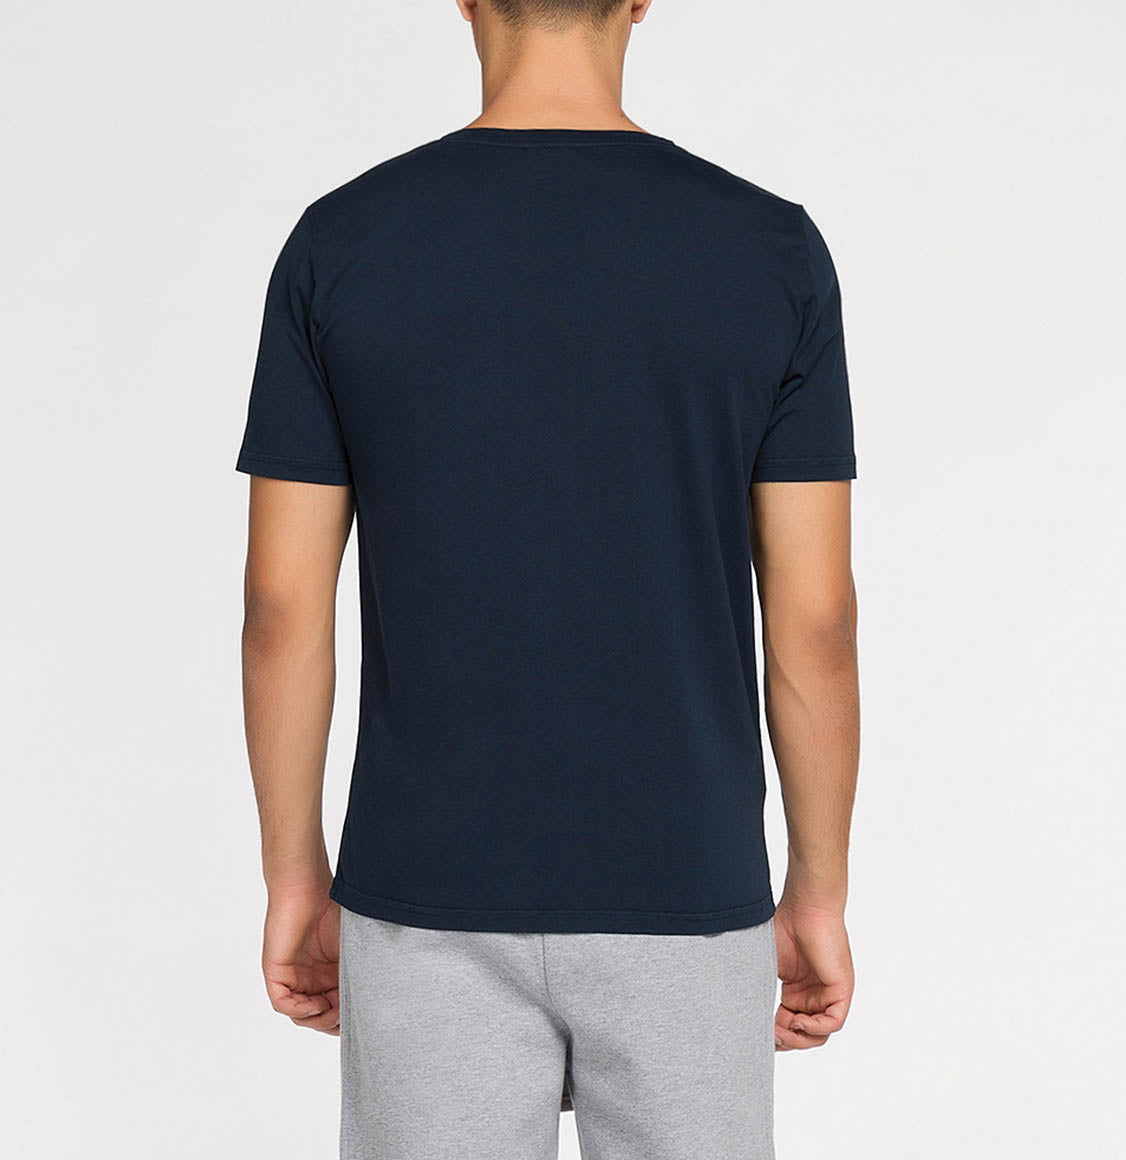 Crew Neck Garment Dyed Organic Cotton T-shirt Navy Blue | The Project Garments - Back